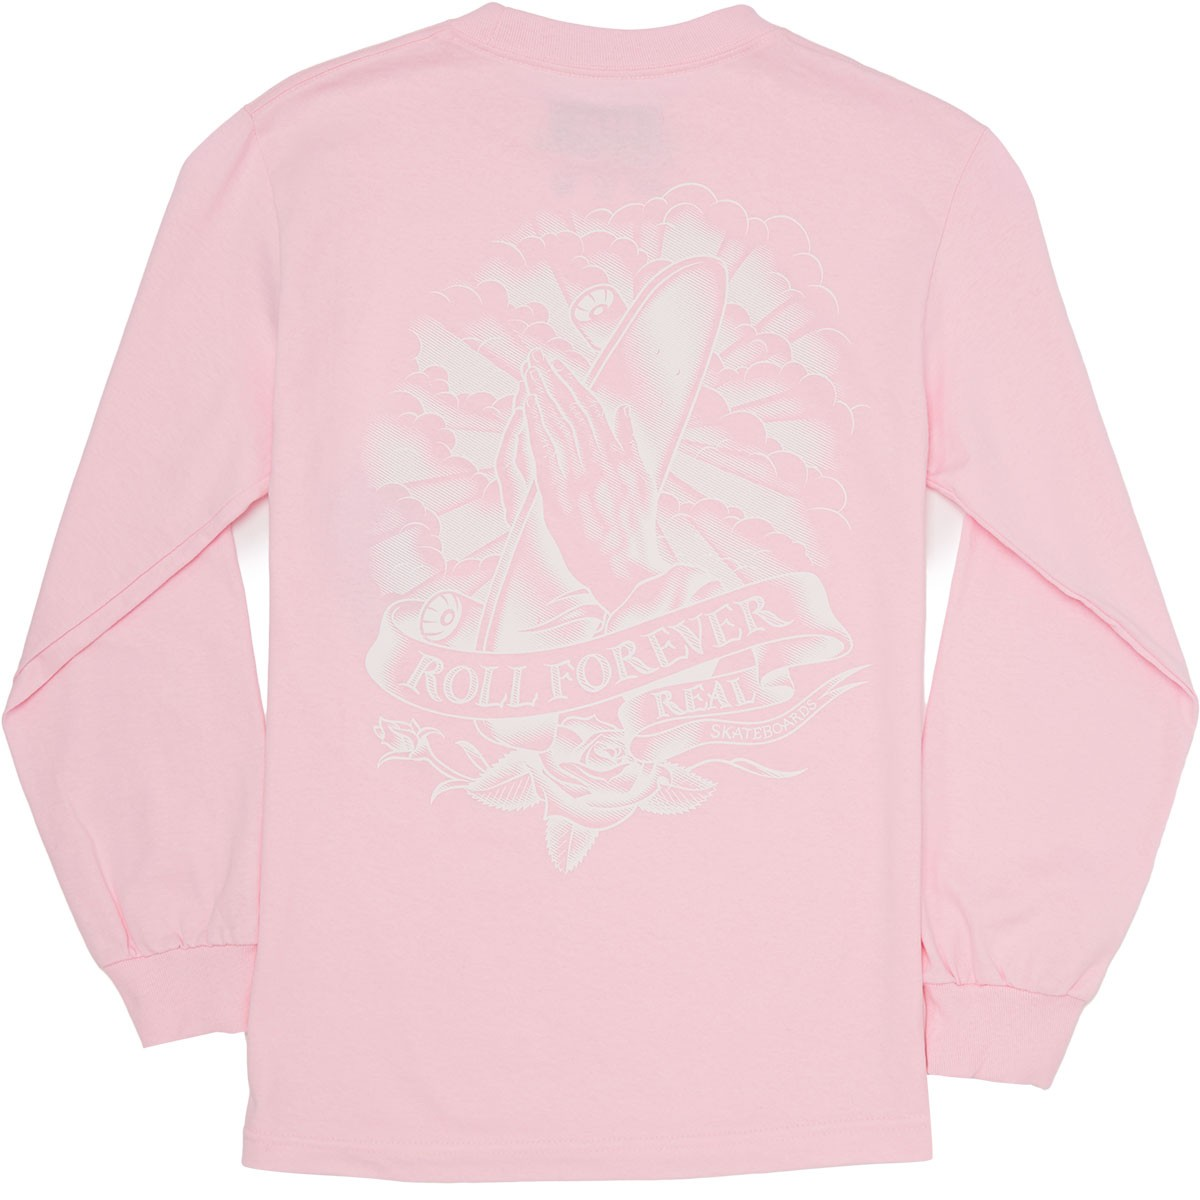 Almighty Double Long Sleeve T-Shirt - Pink